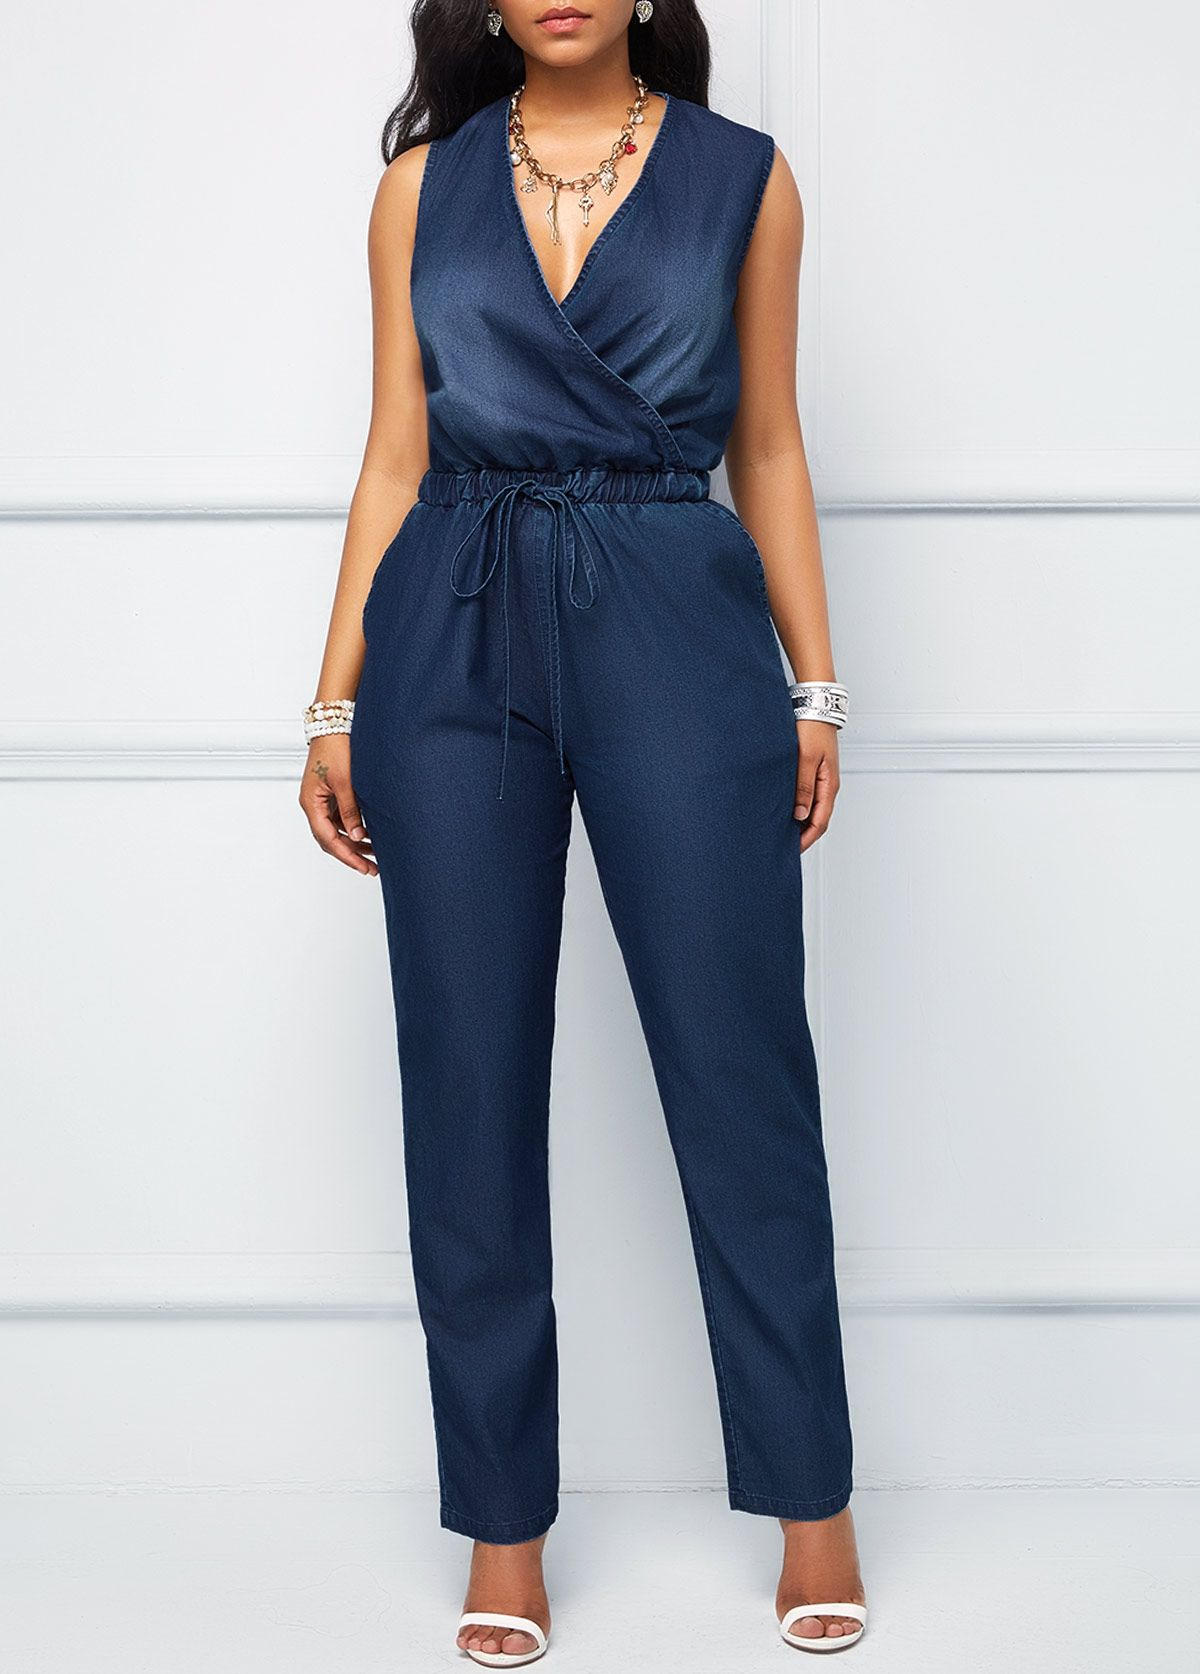 92ccbdbd8 V Neck Drawstring Waist Denim Blue Jumpsuit | Rotita.com - USD $36.63